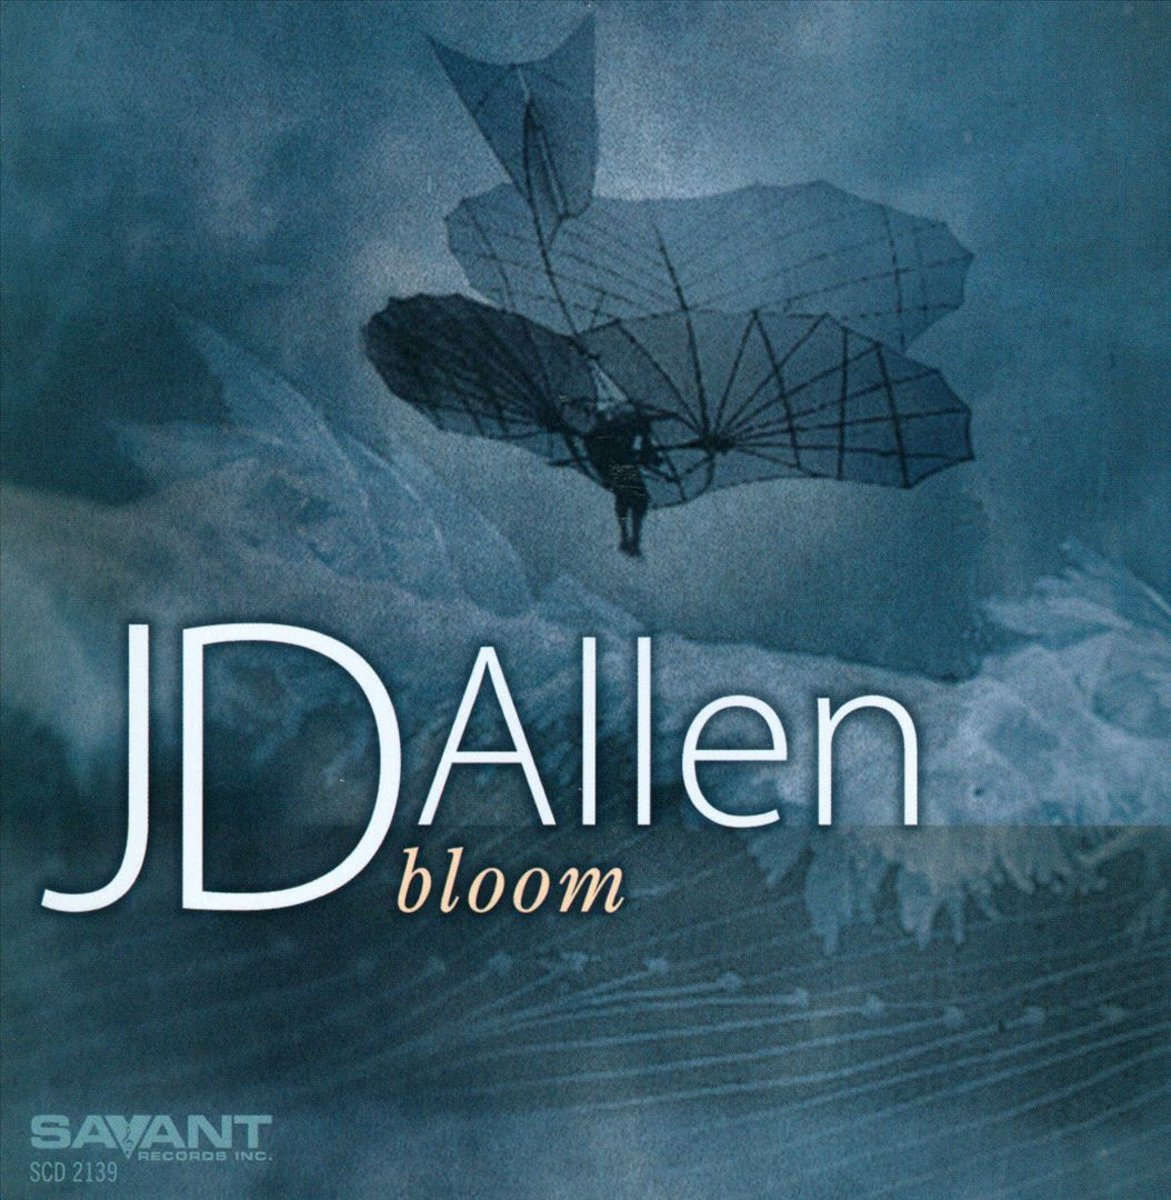 Jd Allen Jd Allen. Bloom jd коллекция весна